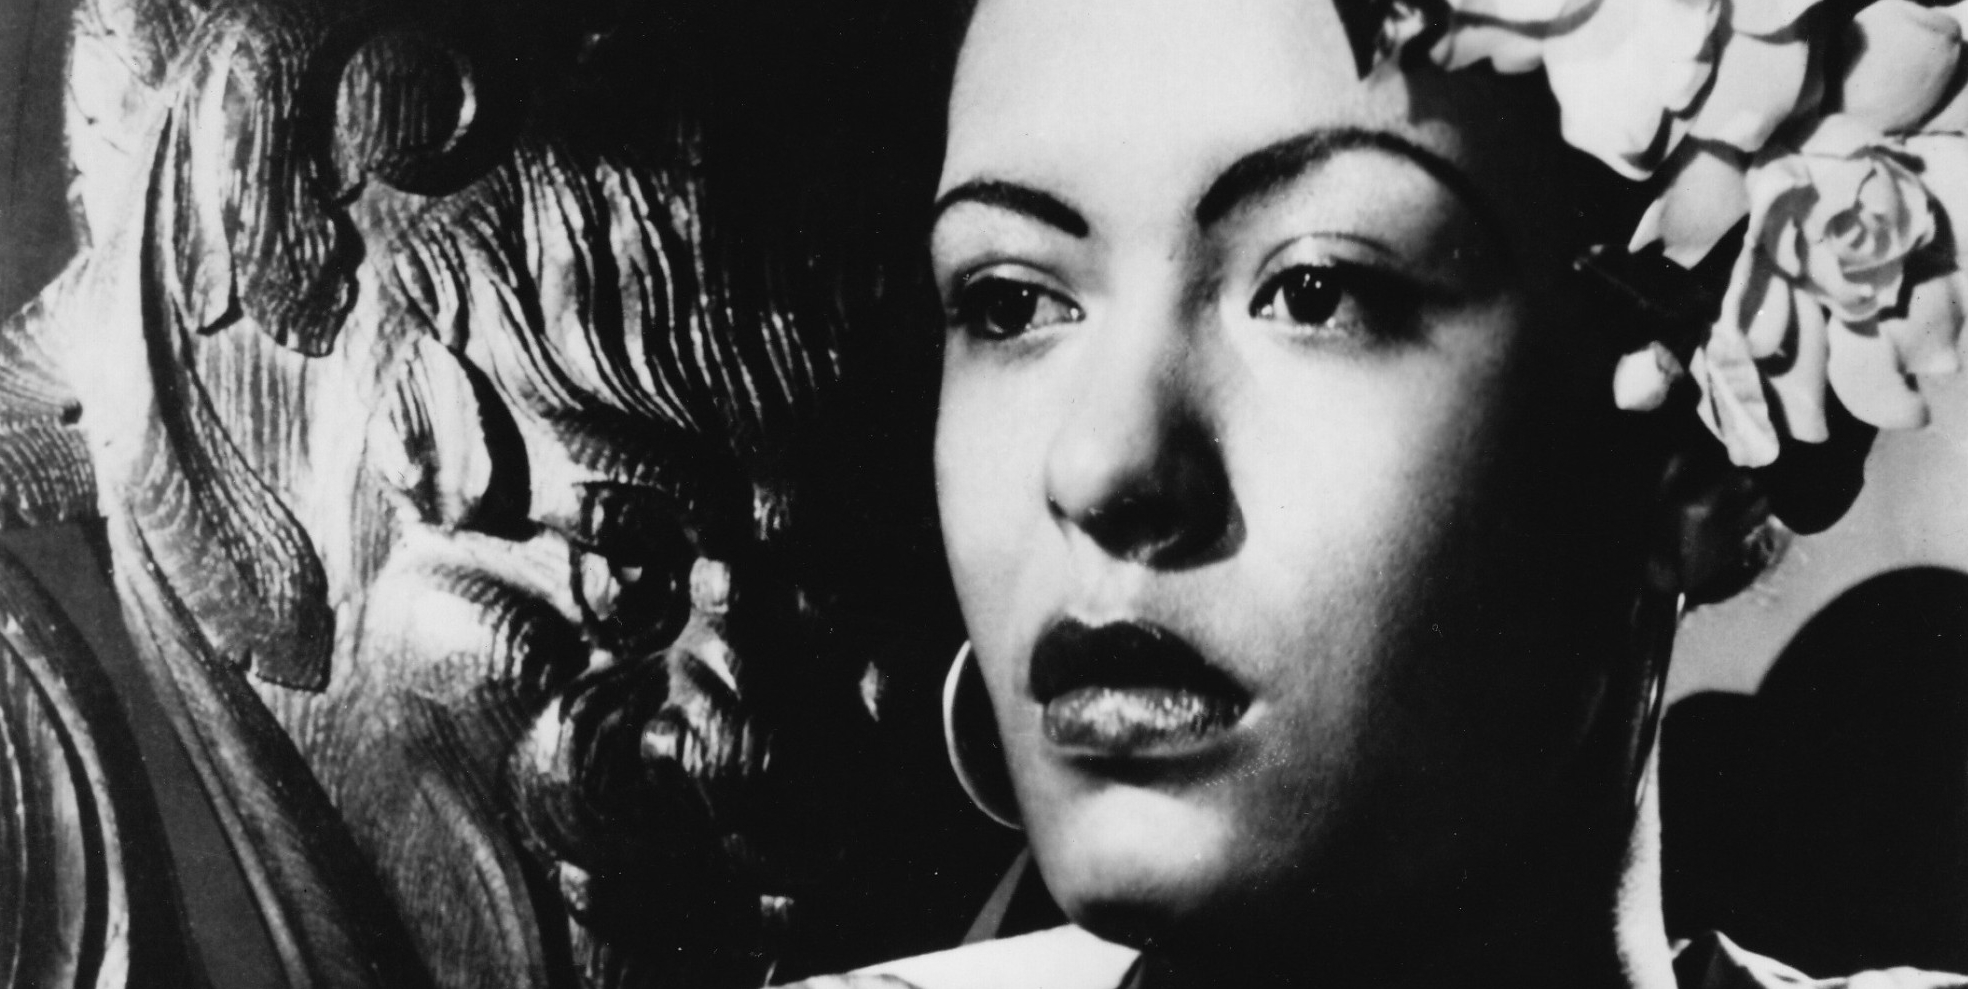 http://lounge.obviousmag.org/isso_compensa/2015/04/05/Billie_Holiday_13.jpg